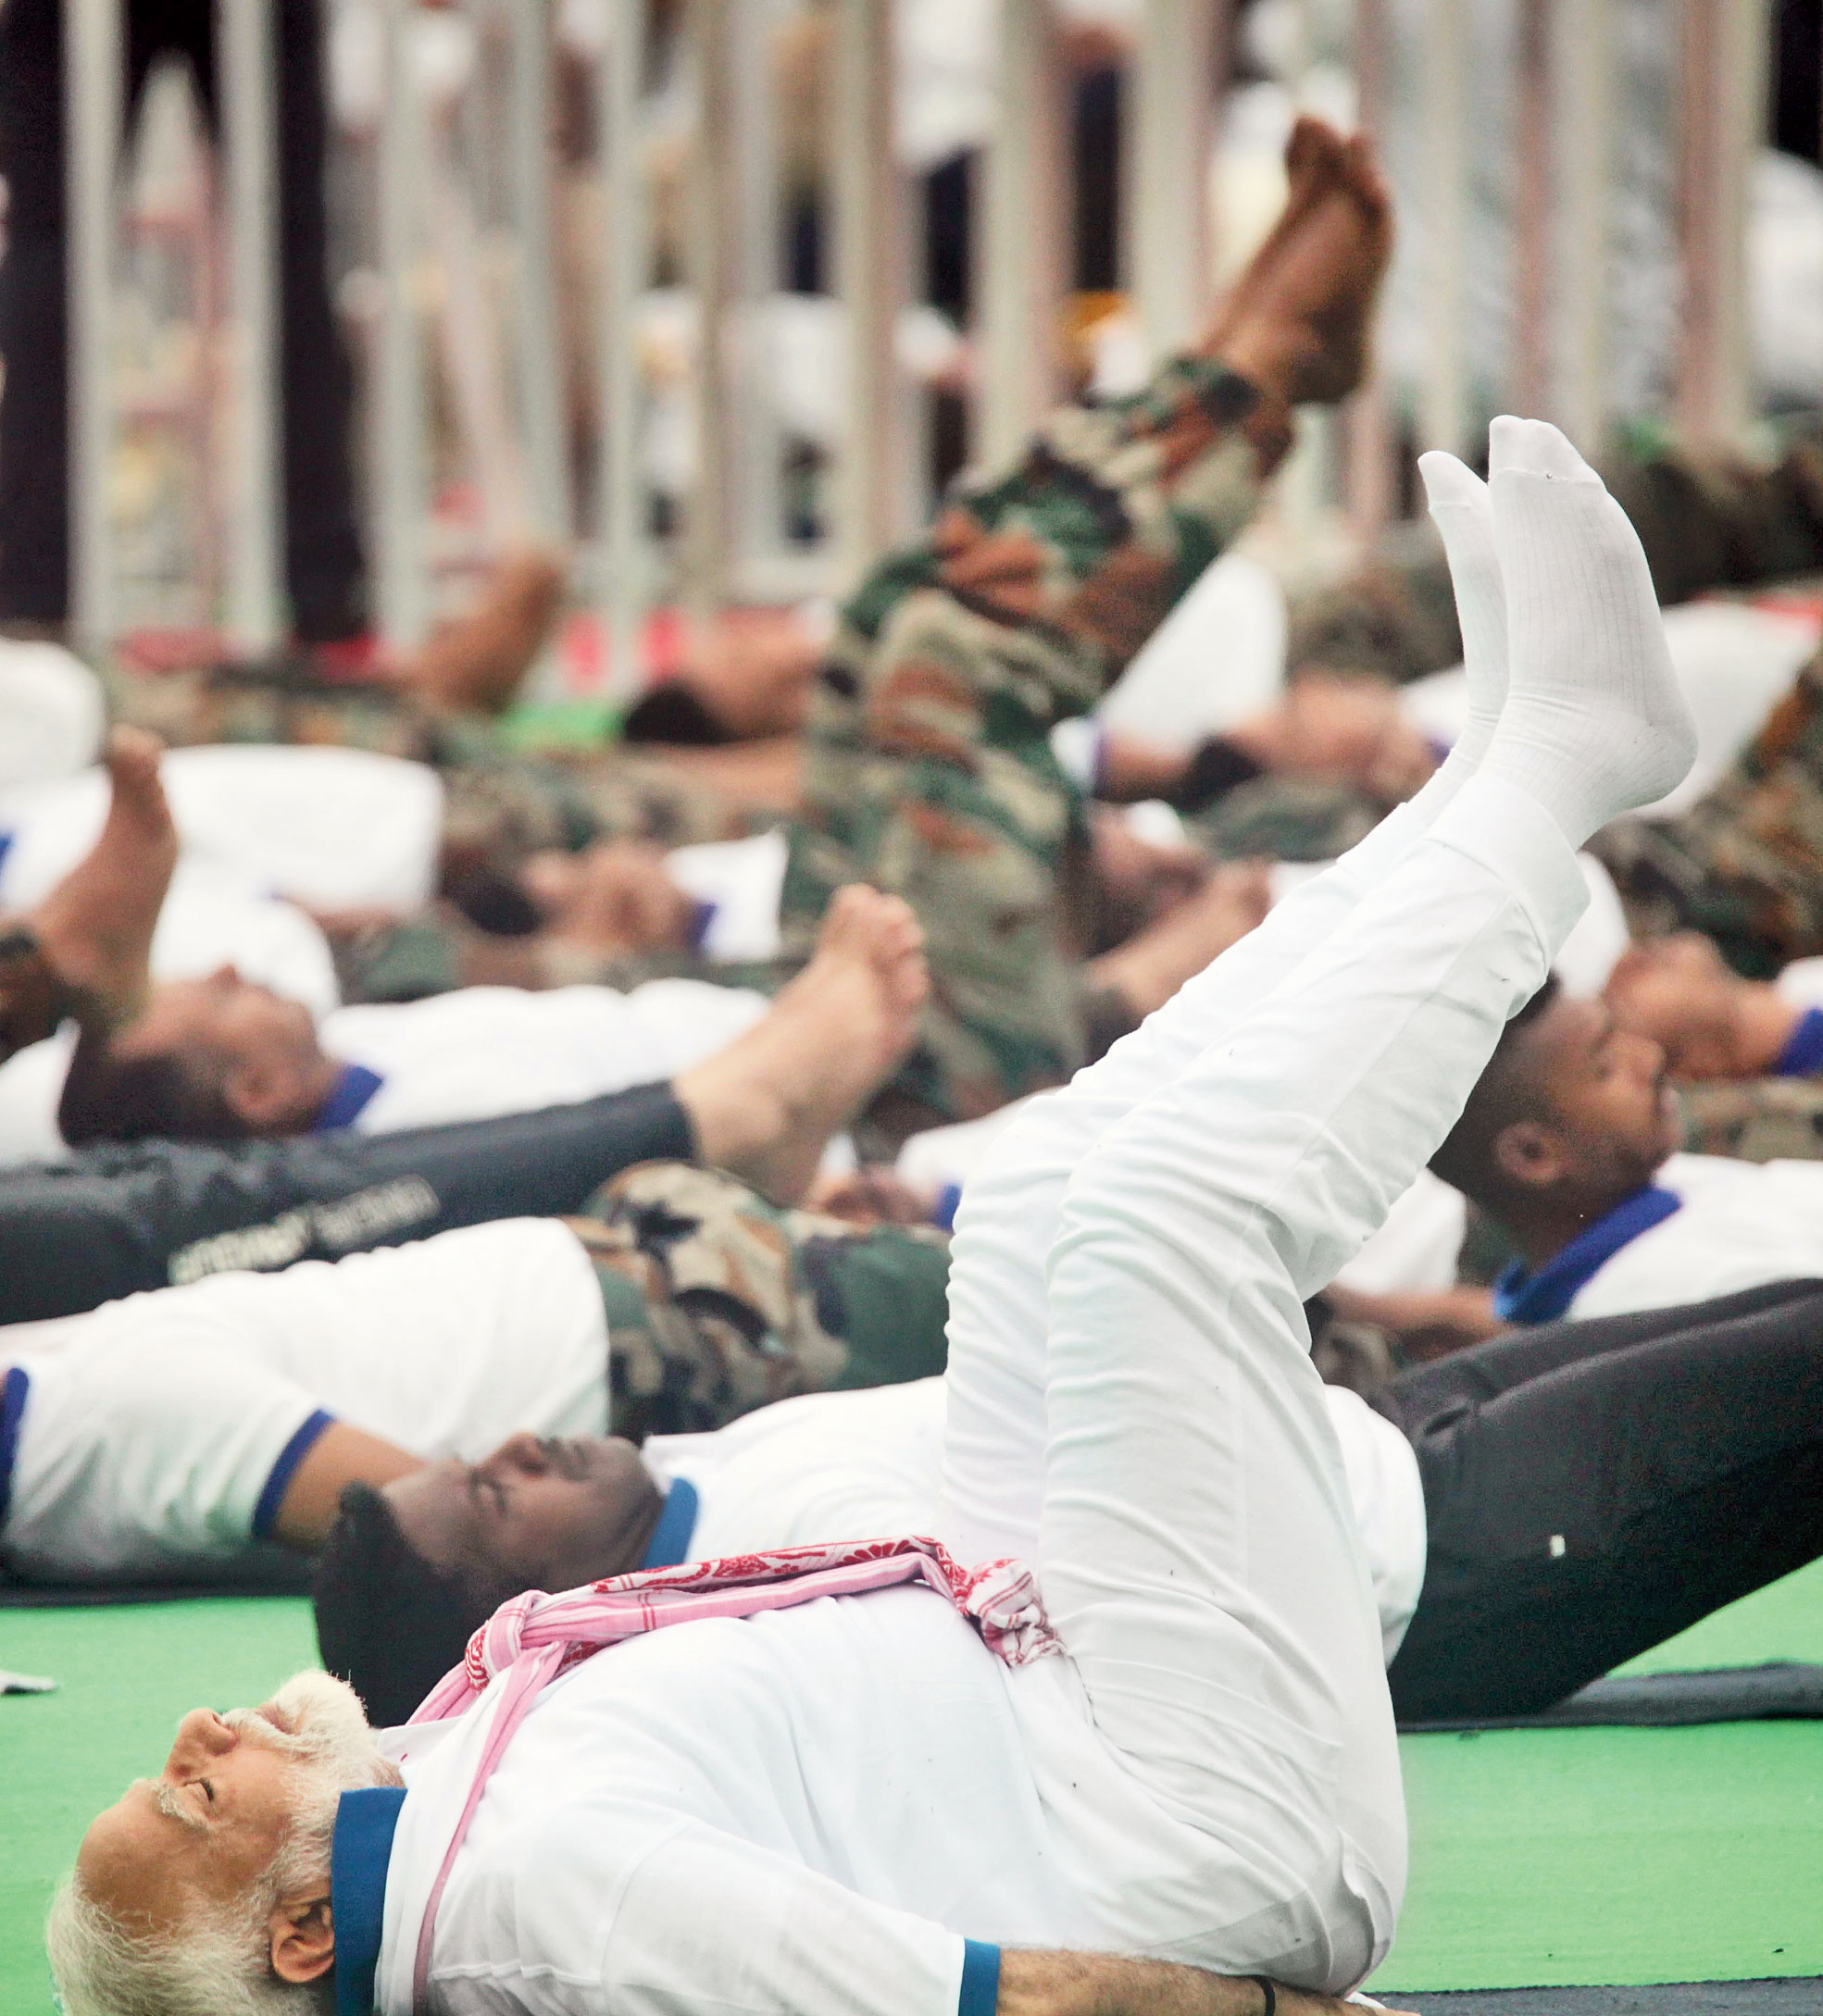 Prime Minister Narendra Modi performs the Uttana Padasana, which helps in relieving abdominal pain, indigestion, and depression, along with other yoga day participants at Prabhat Tara ground in Ranchi on Friday.